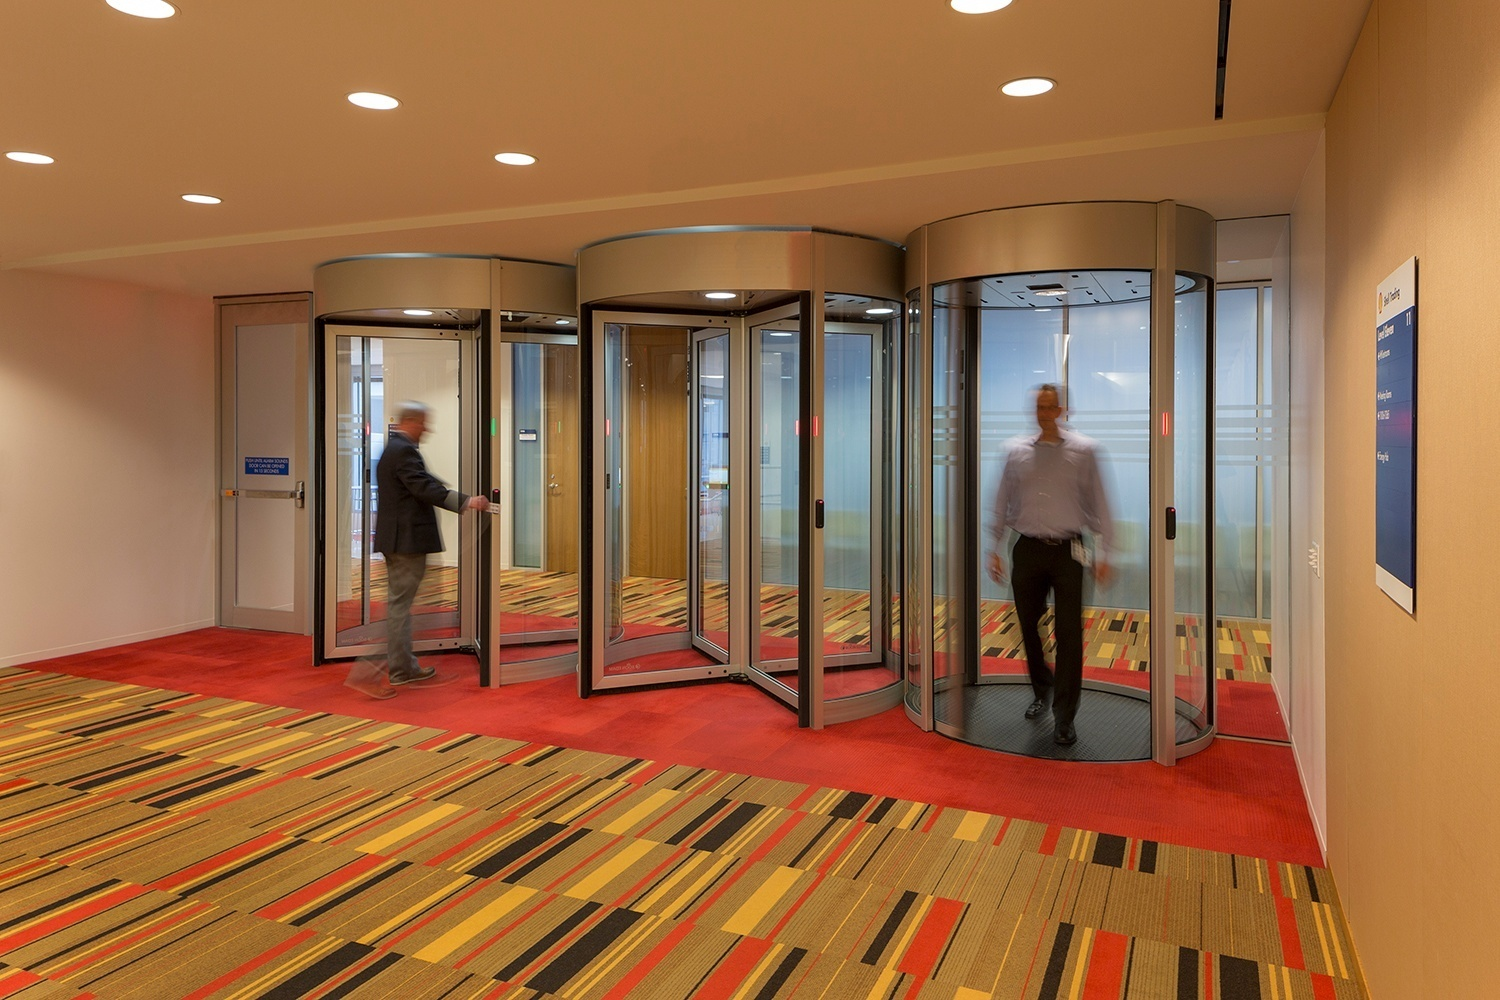 Security revolving doors and portals prevent tailgating and piggybacking